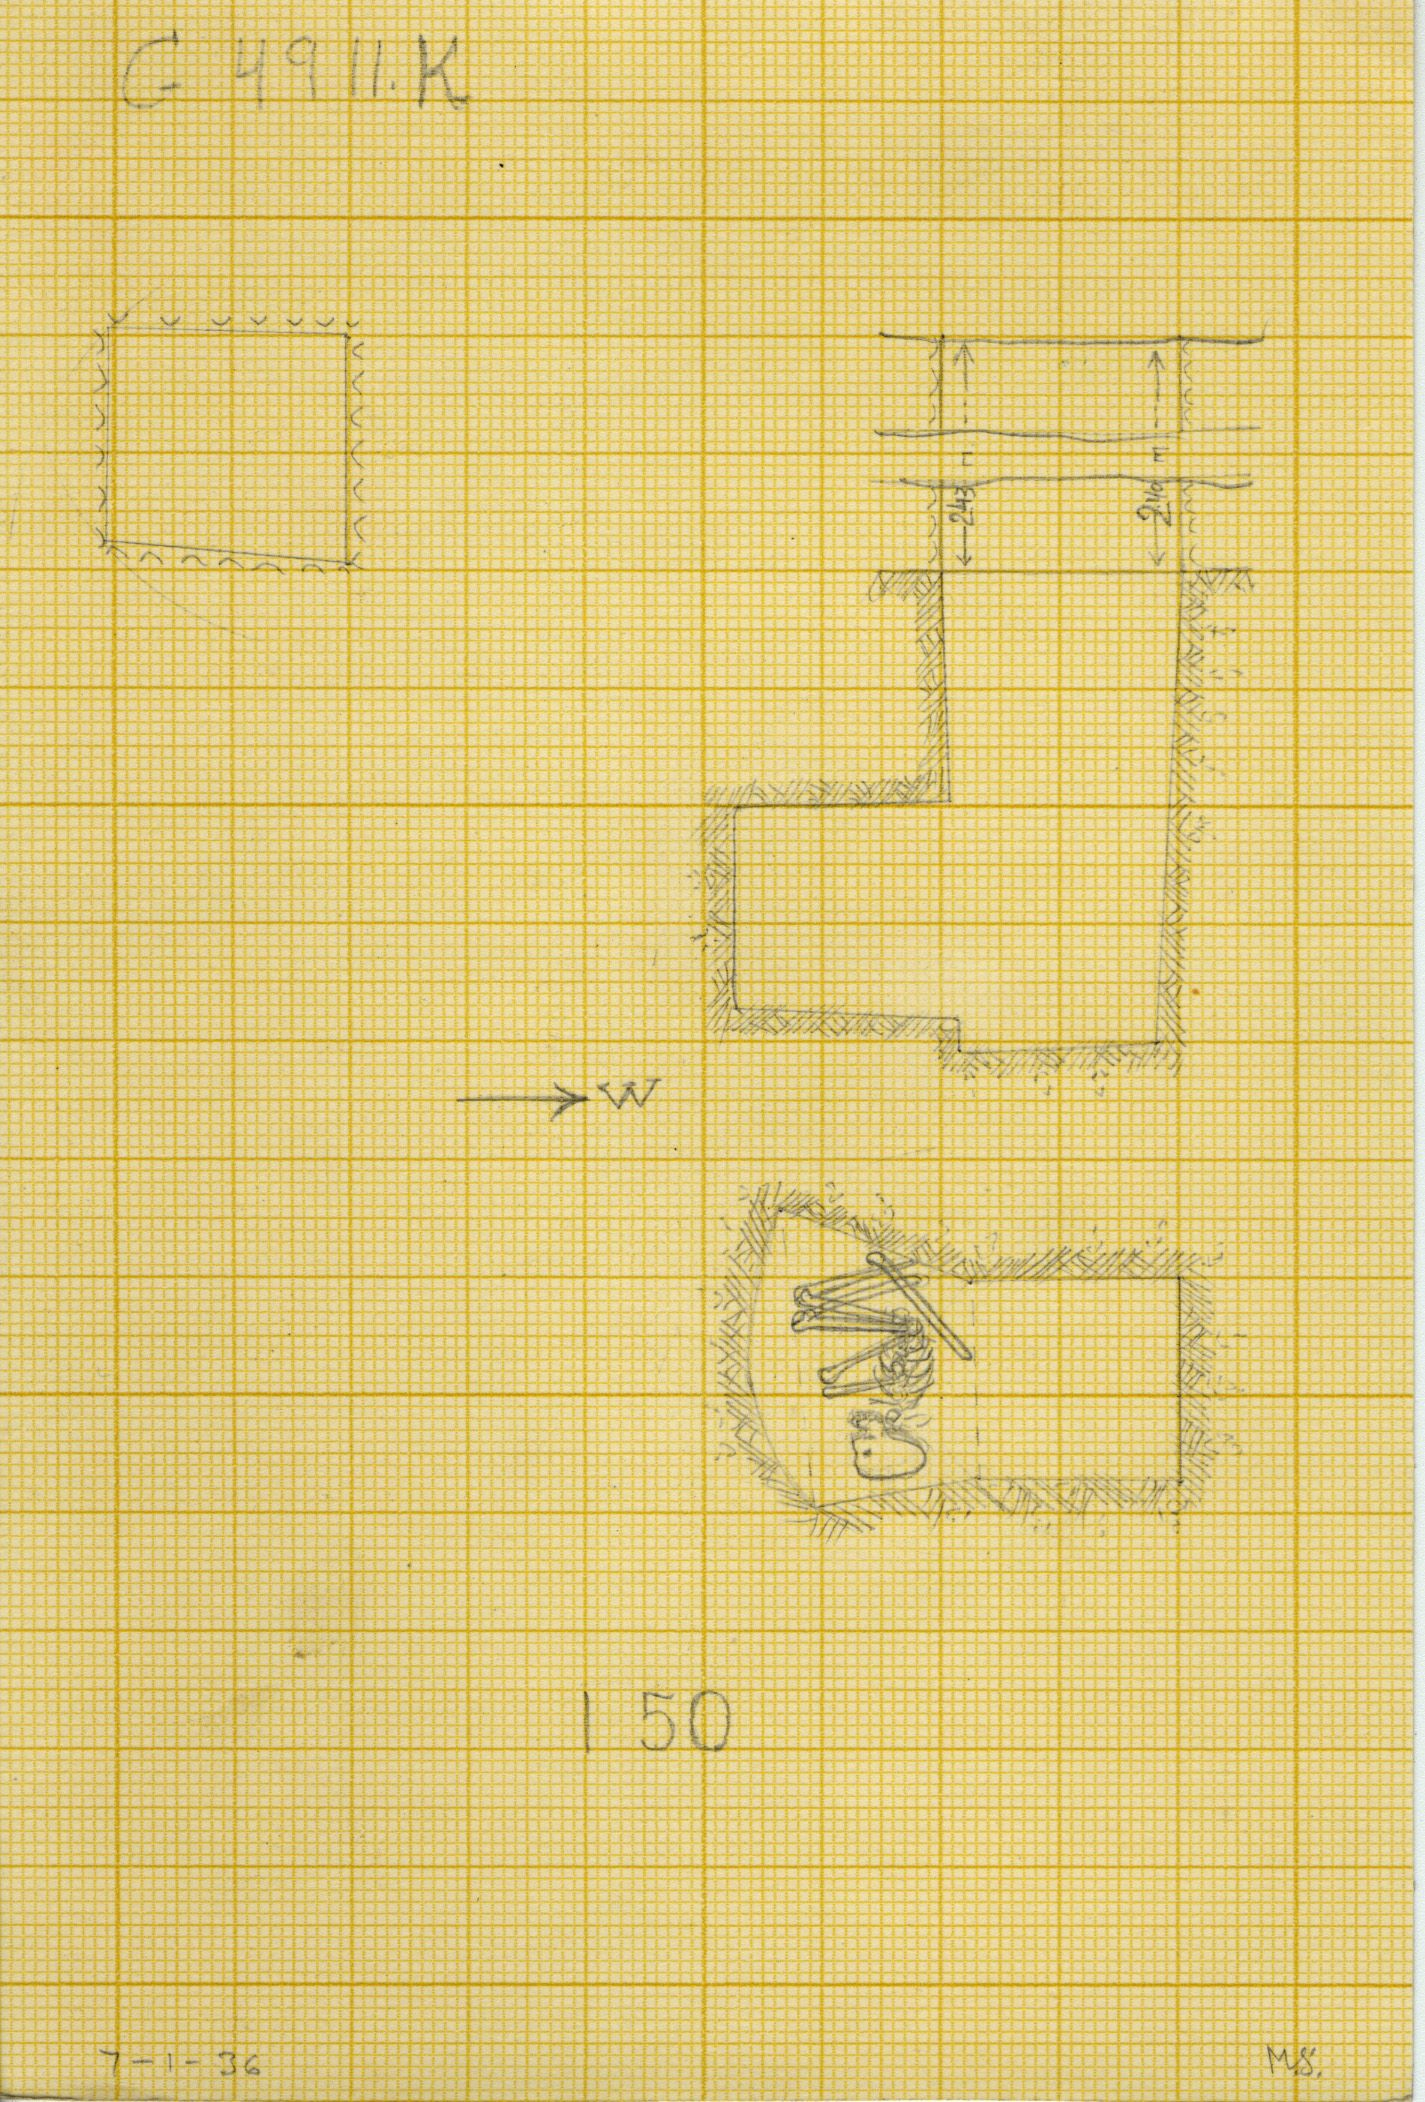 Maps and plans: G 4911, Shaft K